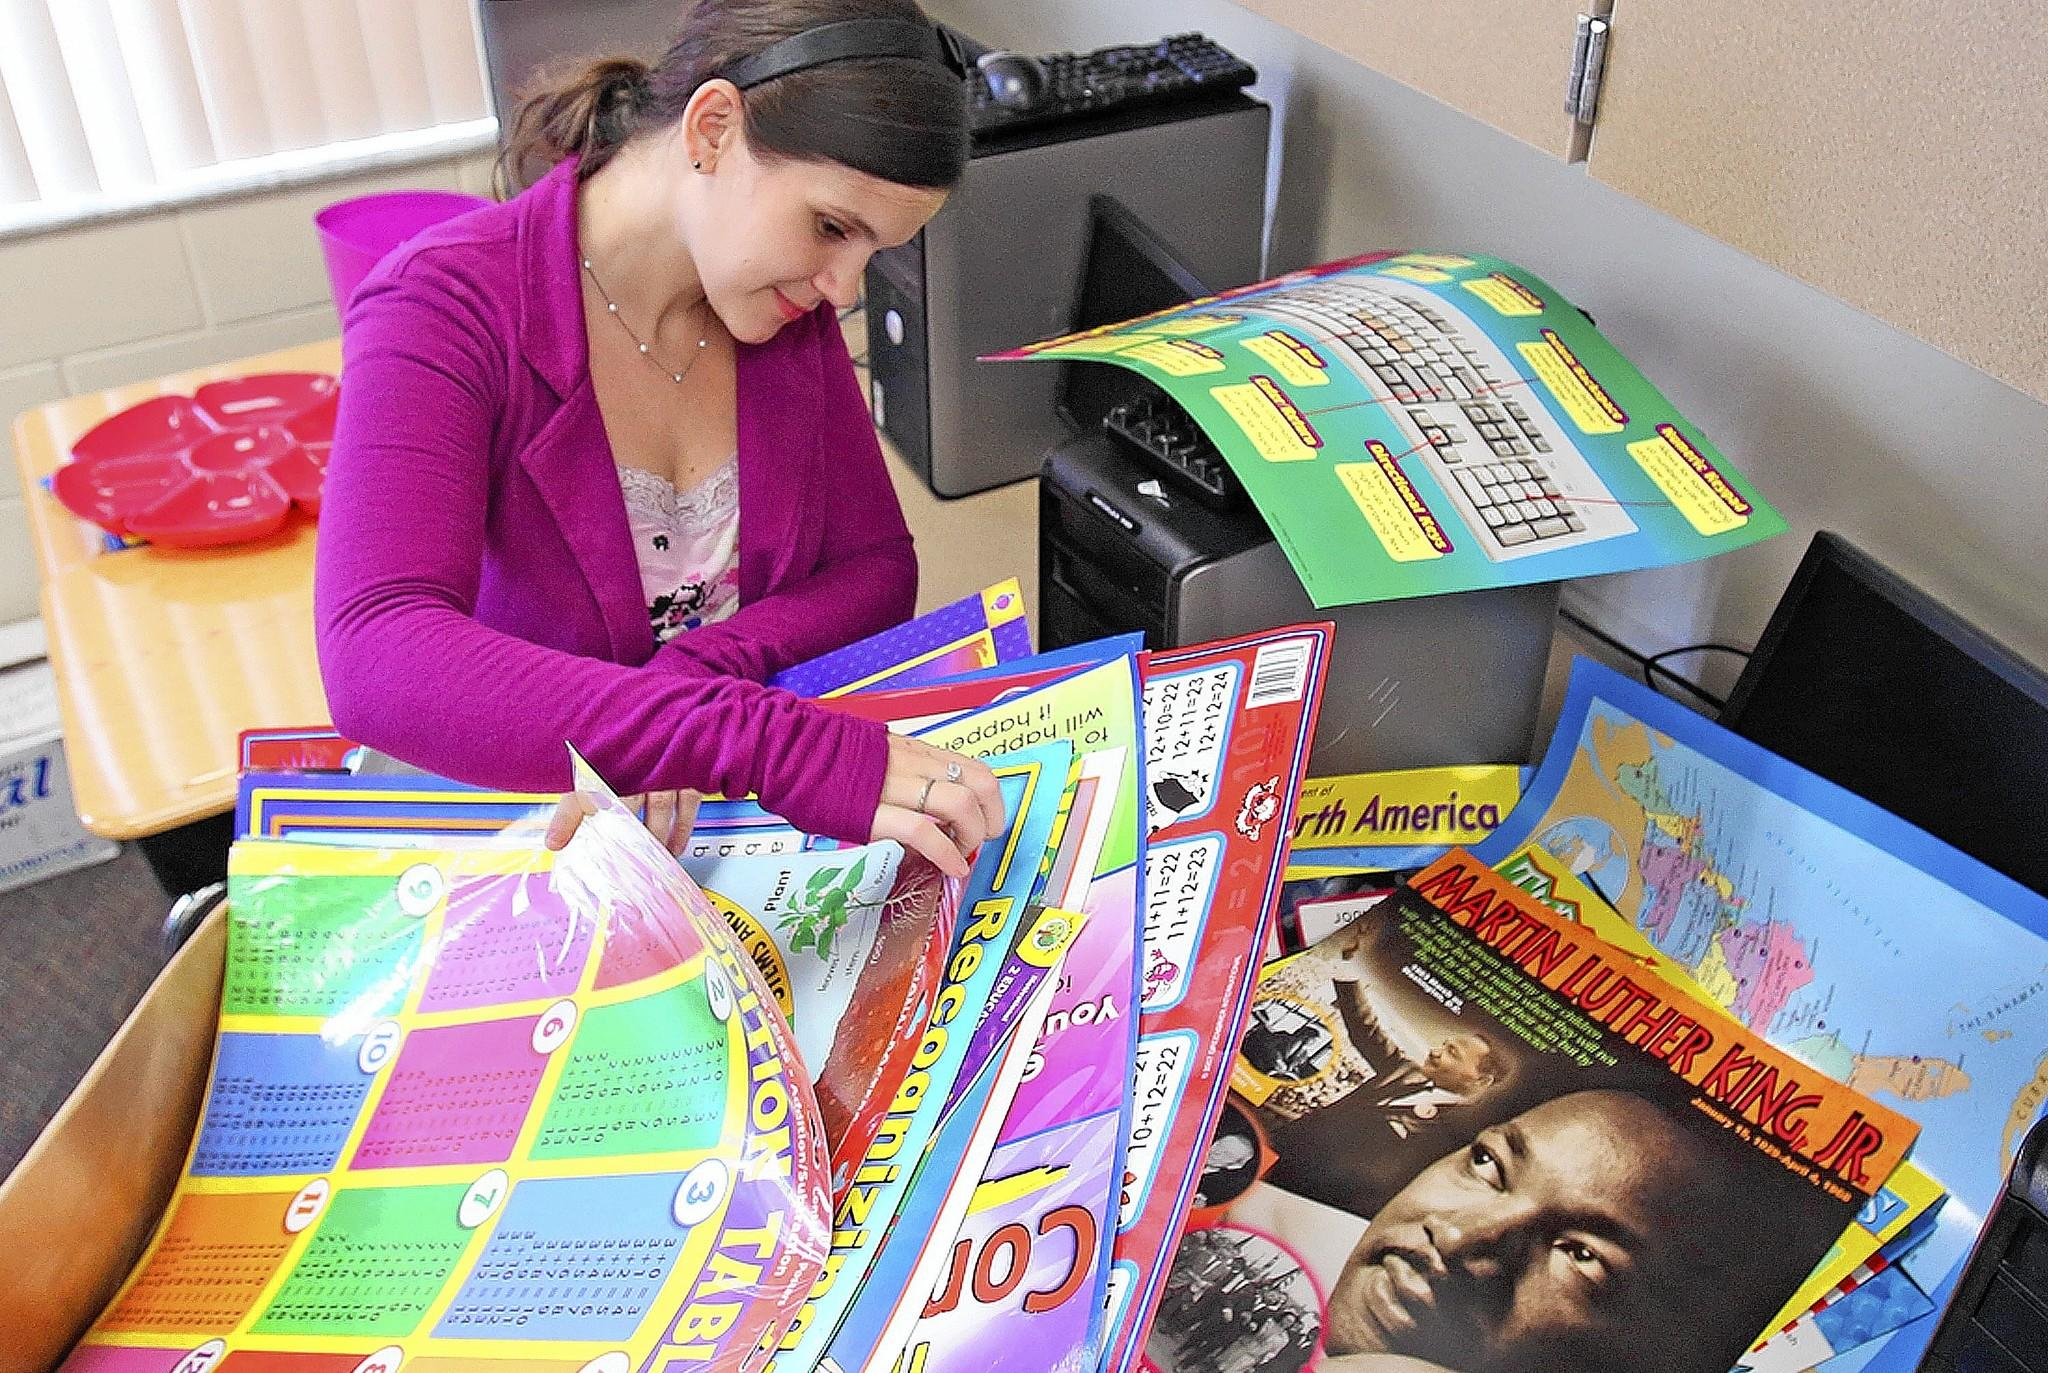 Stephanie Casternopoulos ,26, sorts through some of her posters Monday, August 4, 2014 to hang in her classroom. Casternopoulos recently graduated from UCF and is excited about starting her first job as a second-grade teacher at Minneola Charter Elementary.(Red Huber/ Staff Photographer)